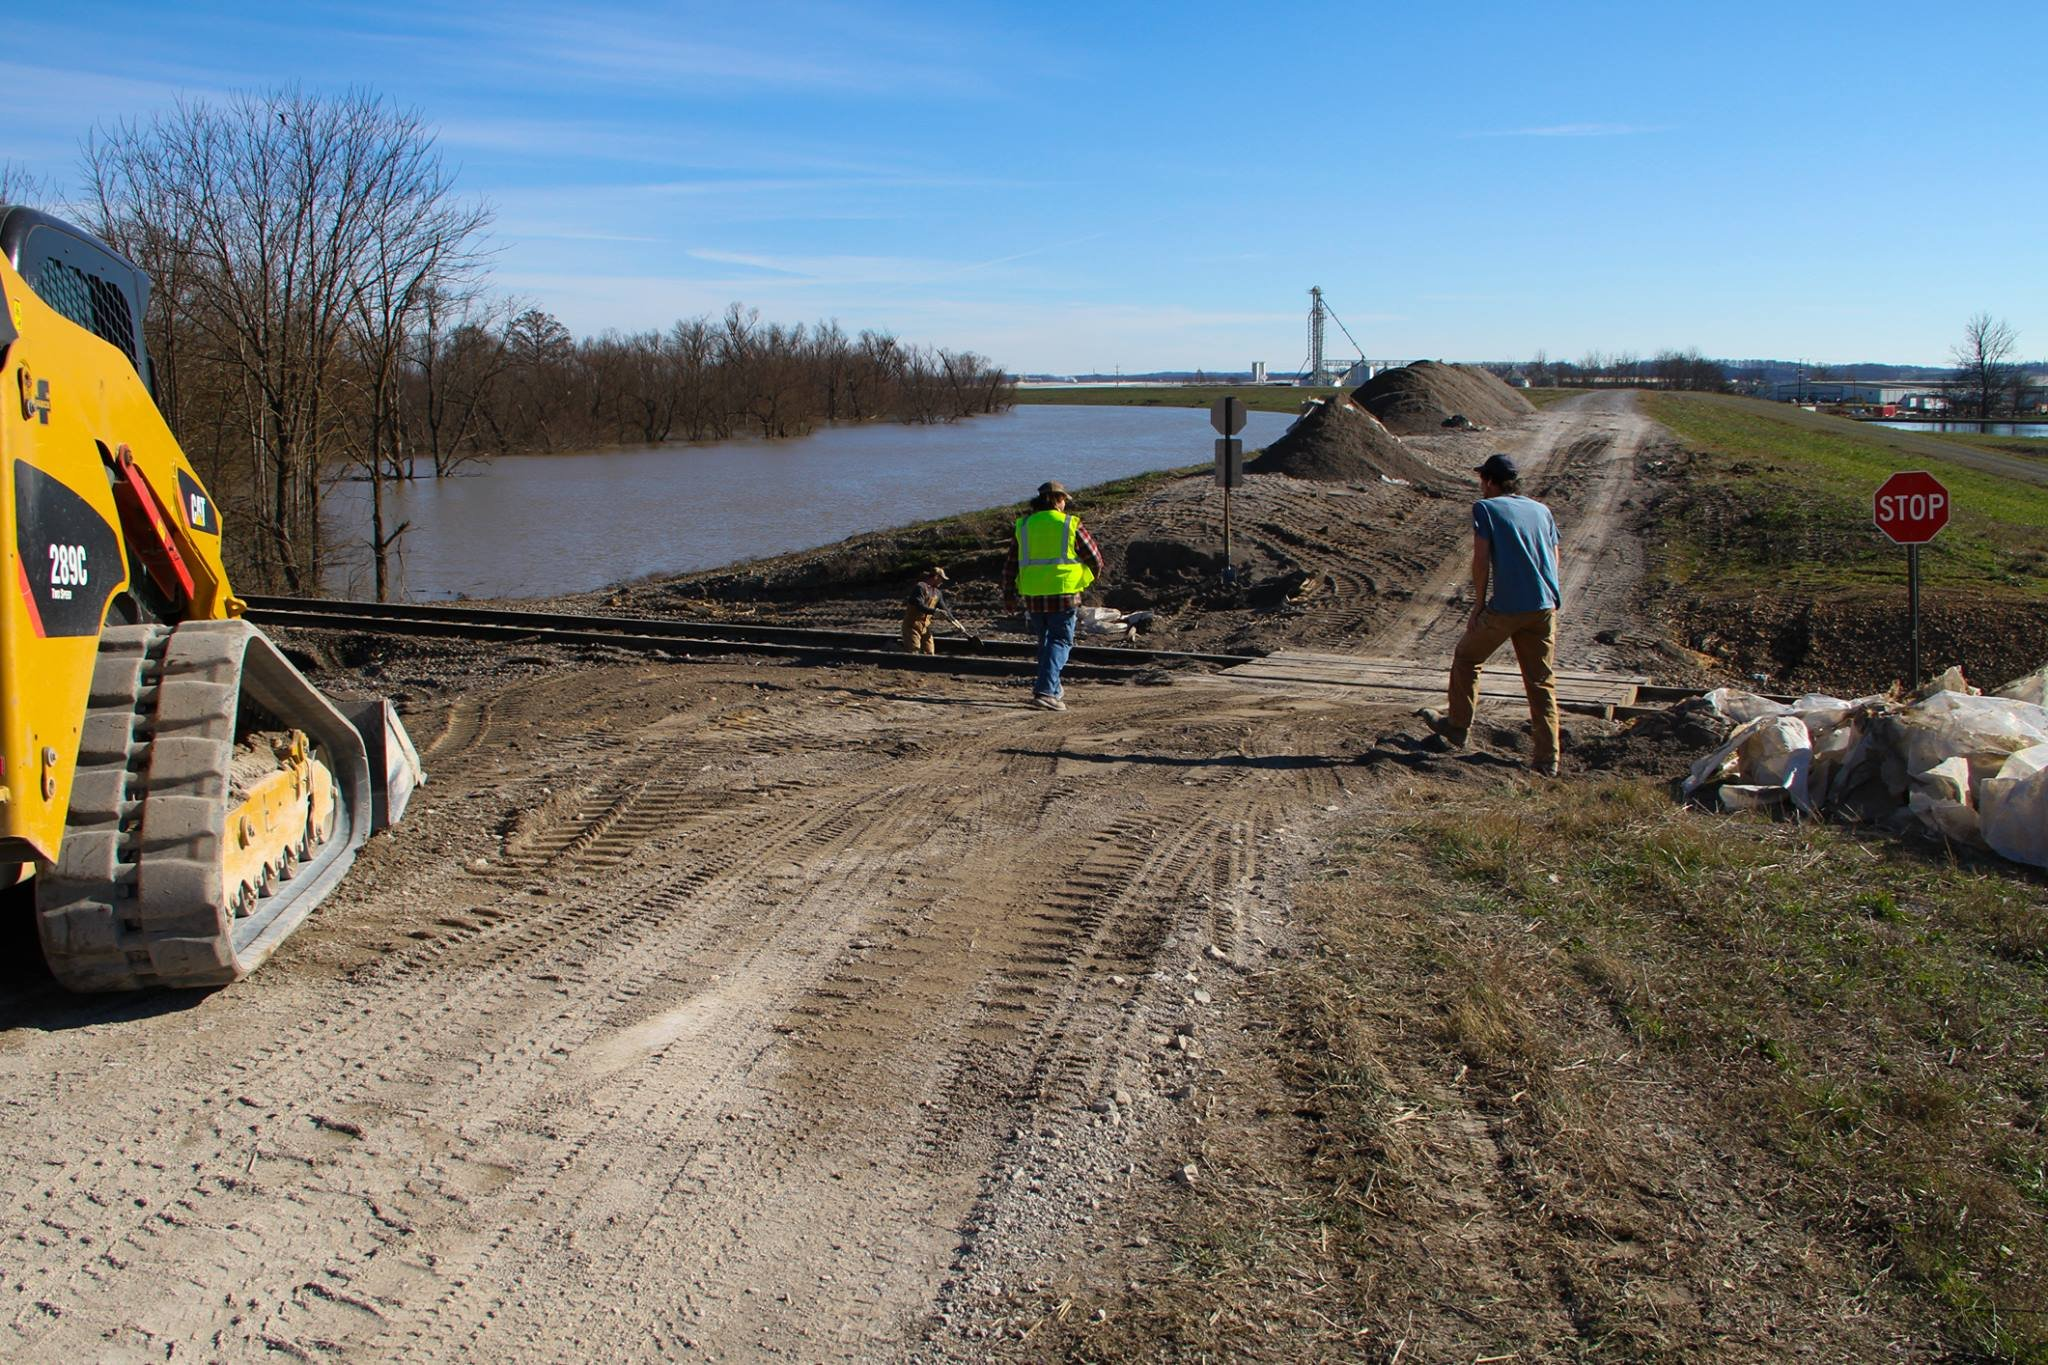 Photo credit: Memphis District Corps of Engineers